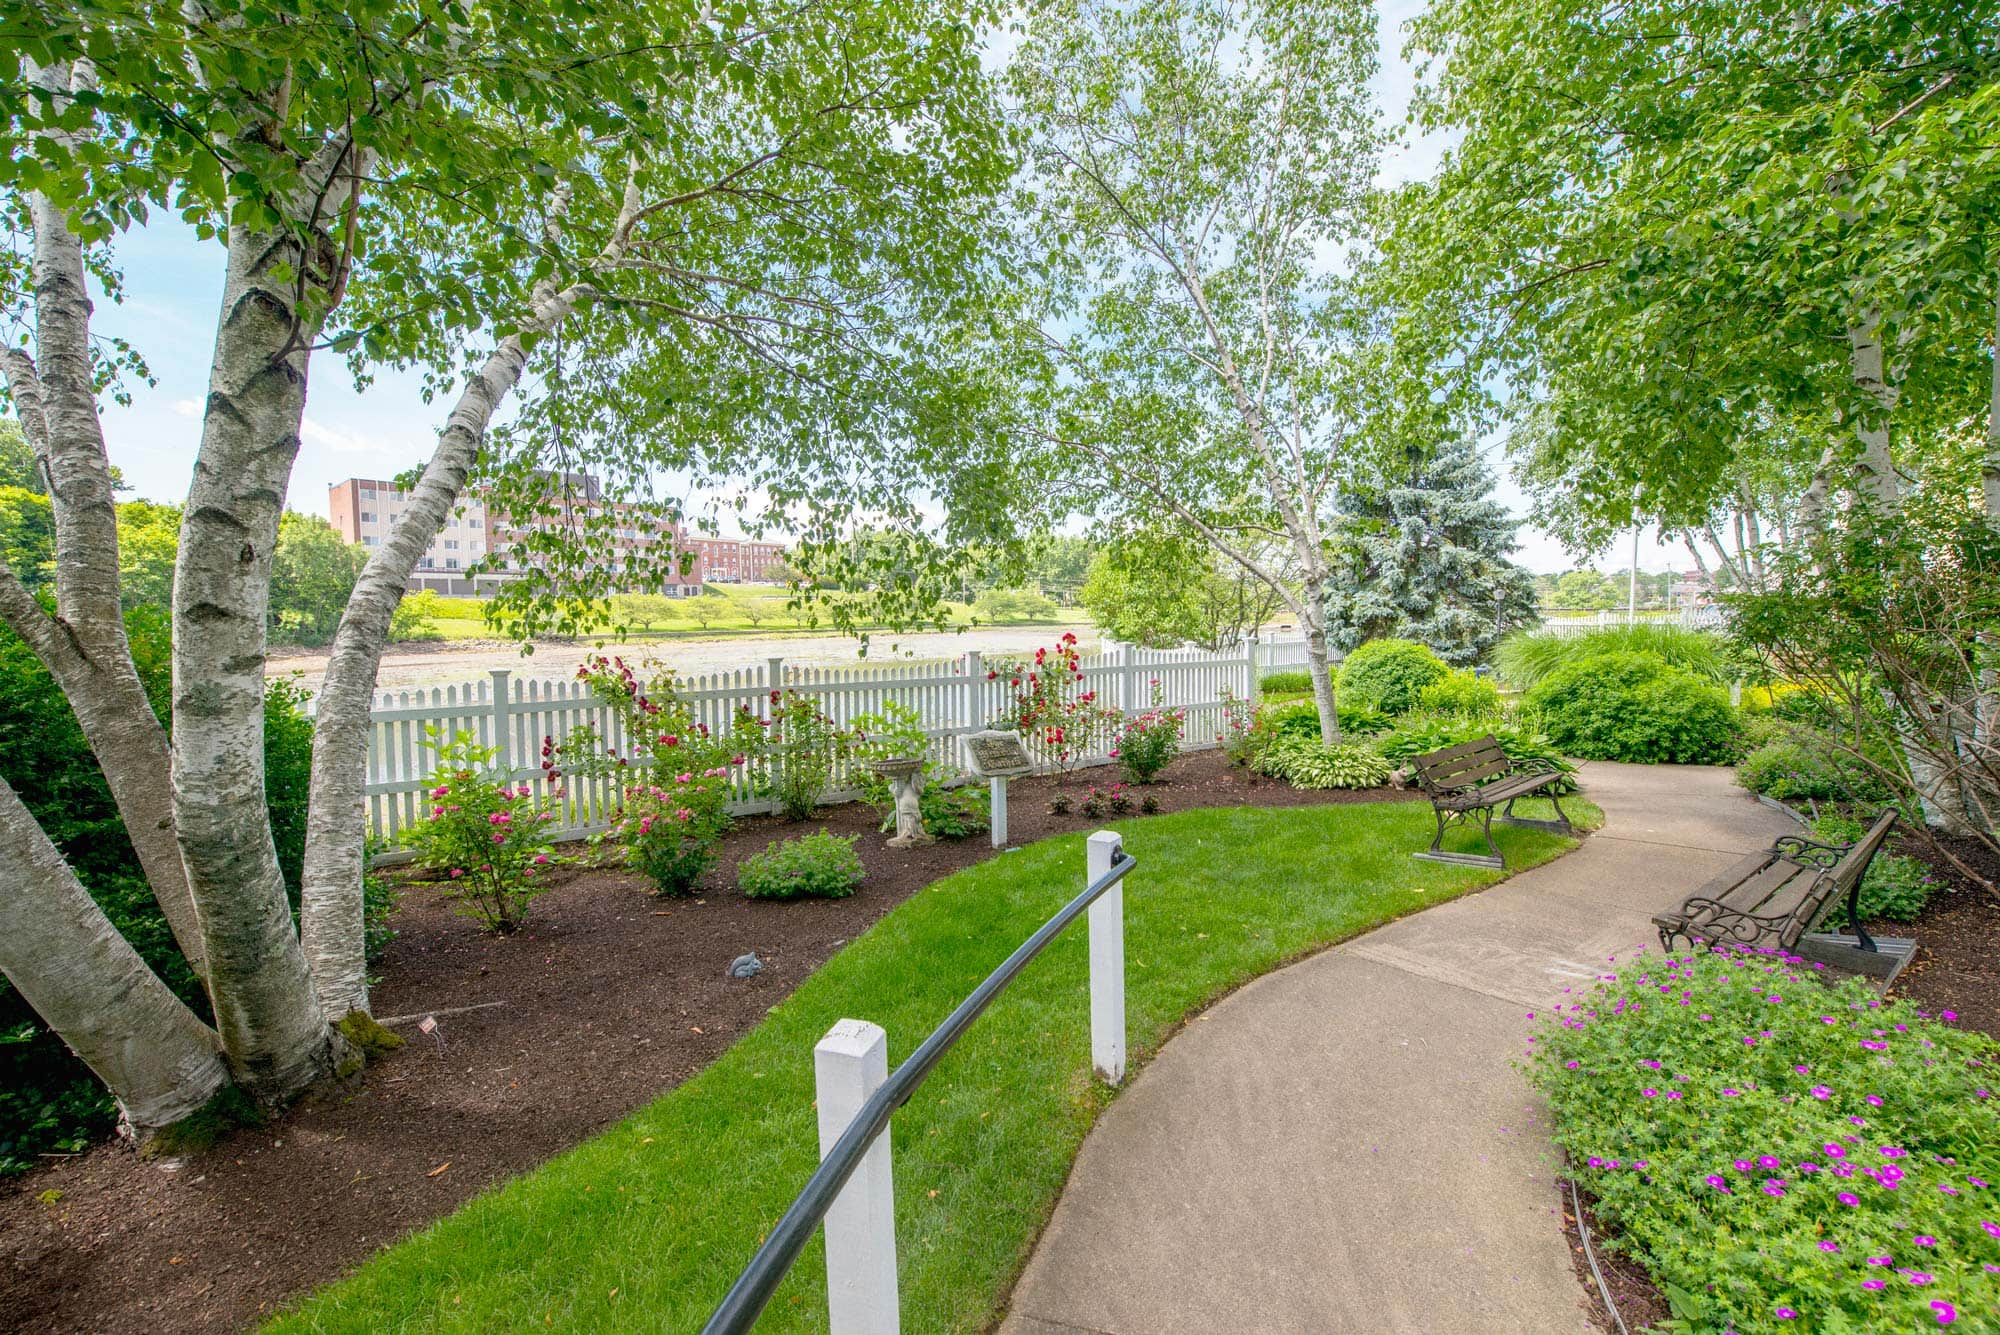 The Wentworth Senior Living garden walking path